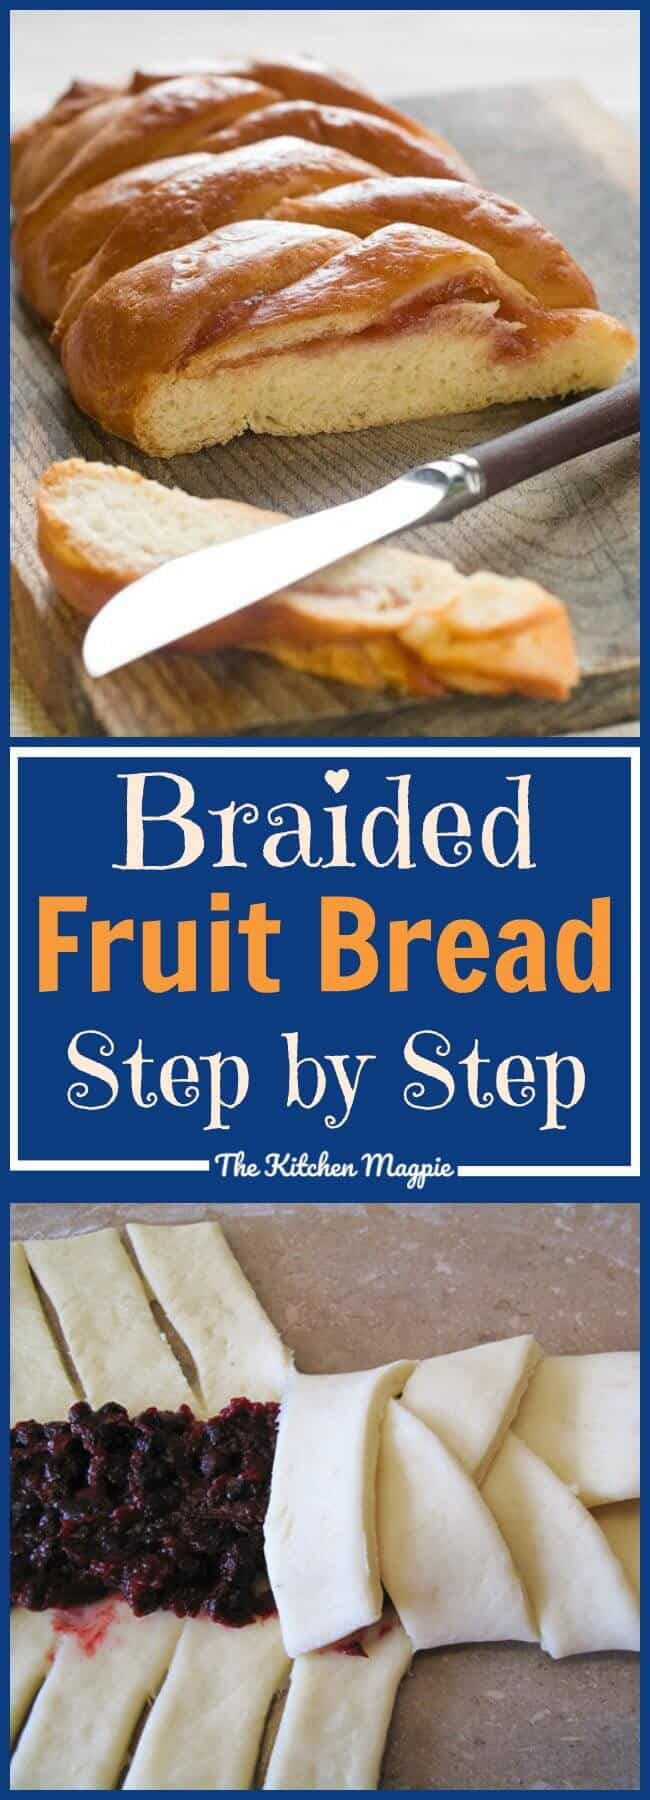 How to Make a Fruit Filling Bread Braid - The Kitchen Magpie